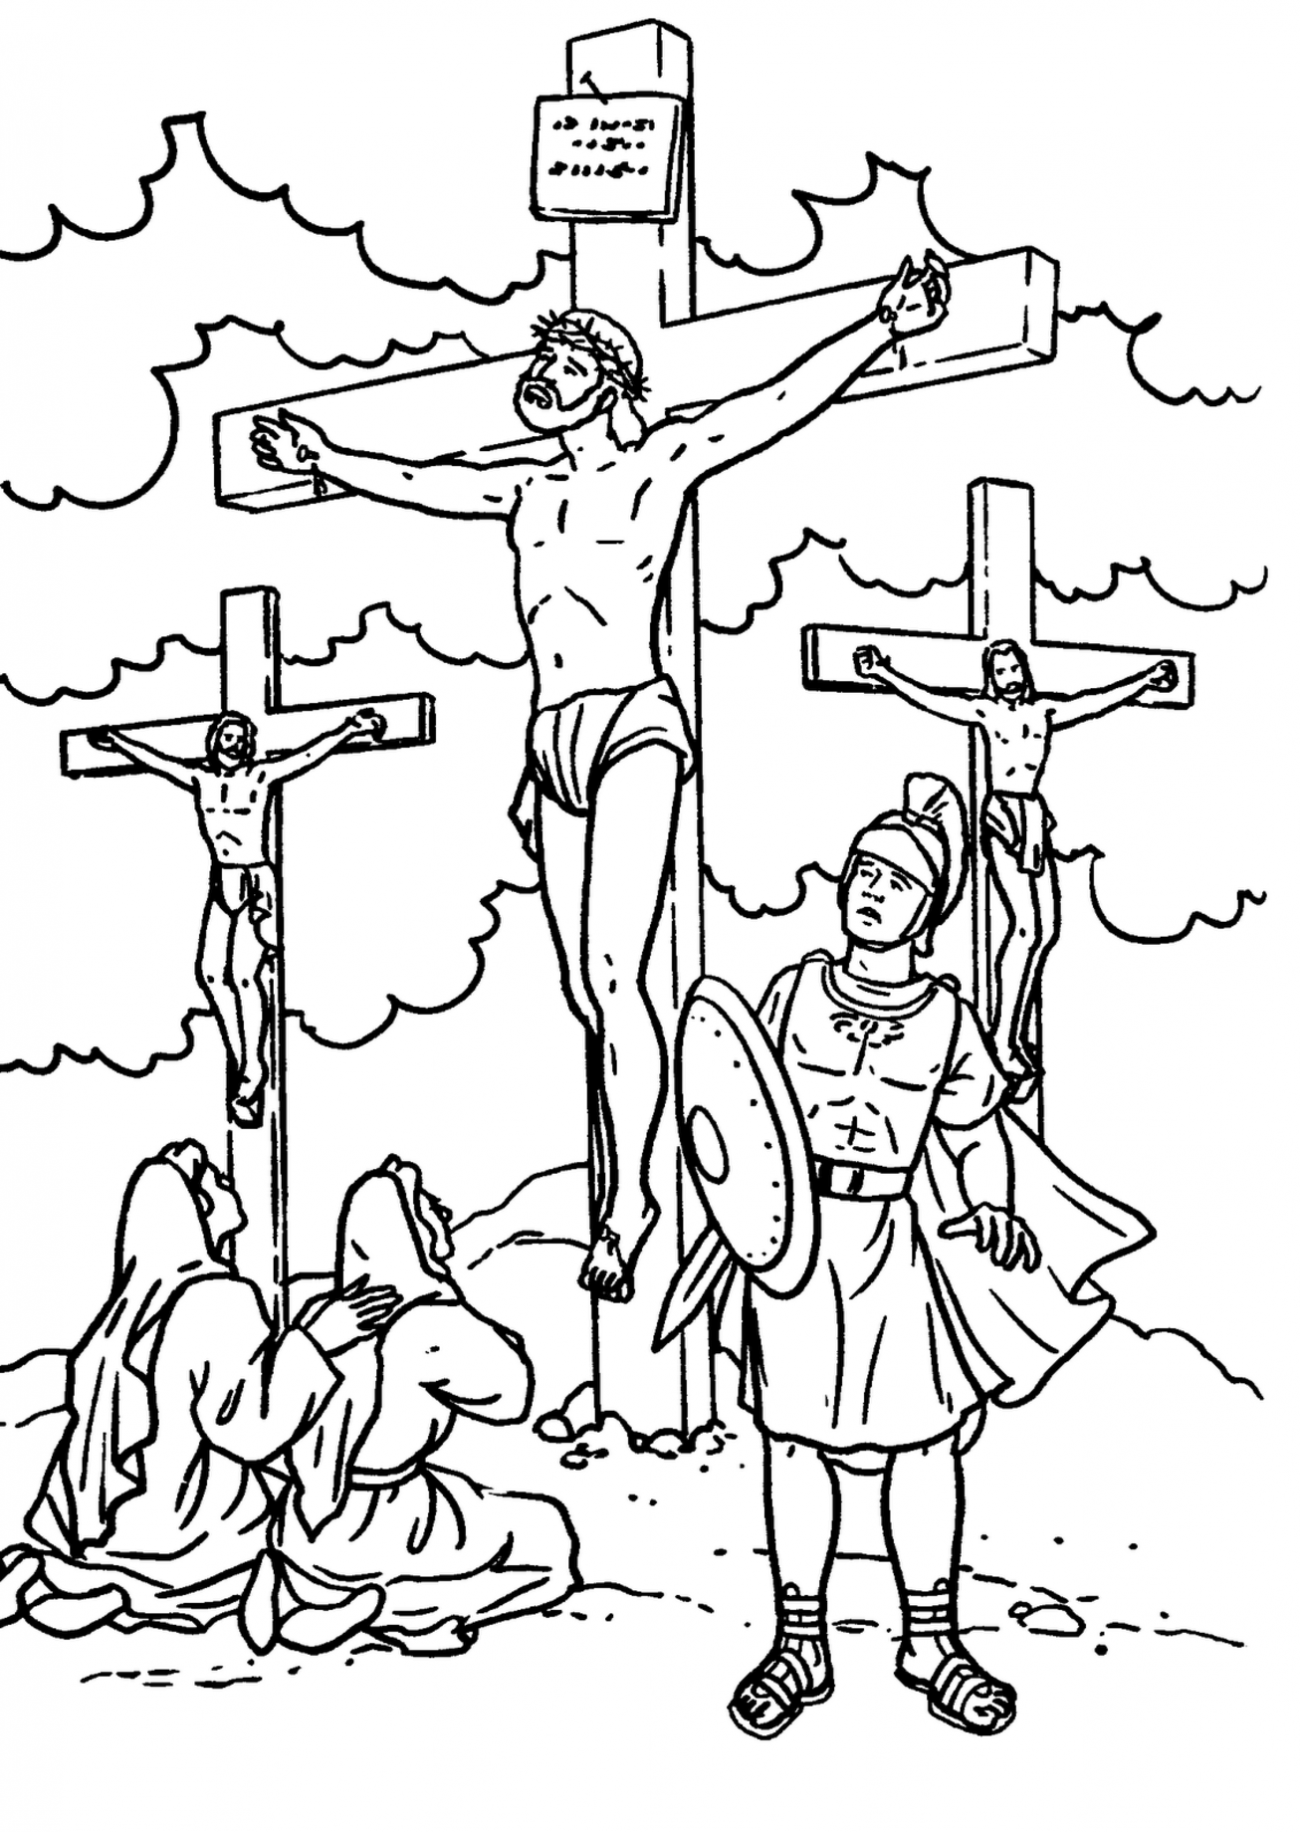 jesus and the children coloring page bible coloring pages free large images religious color children and jesus page the coloring